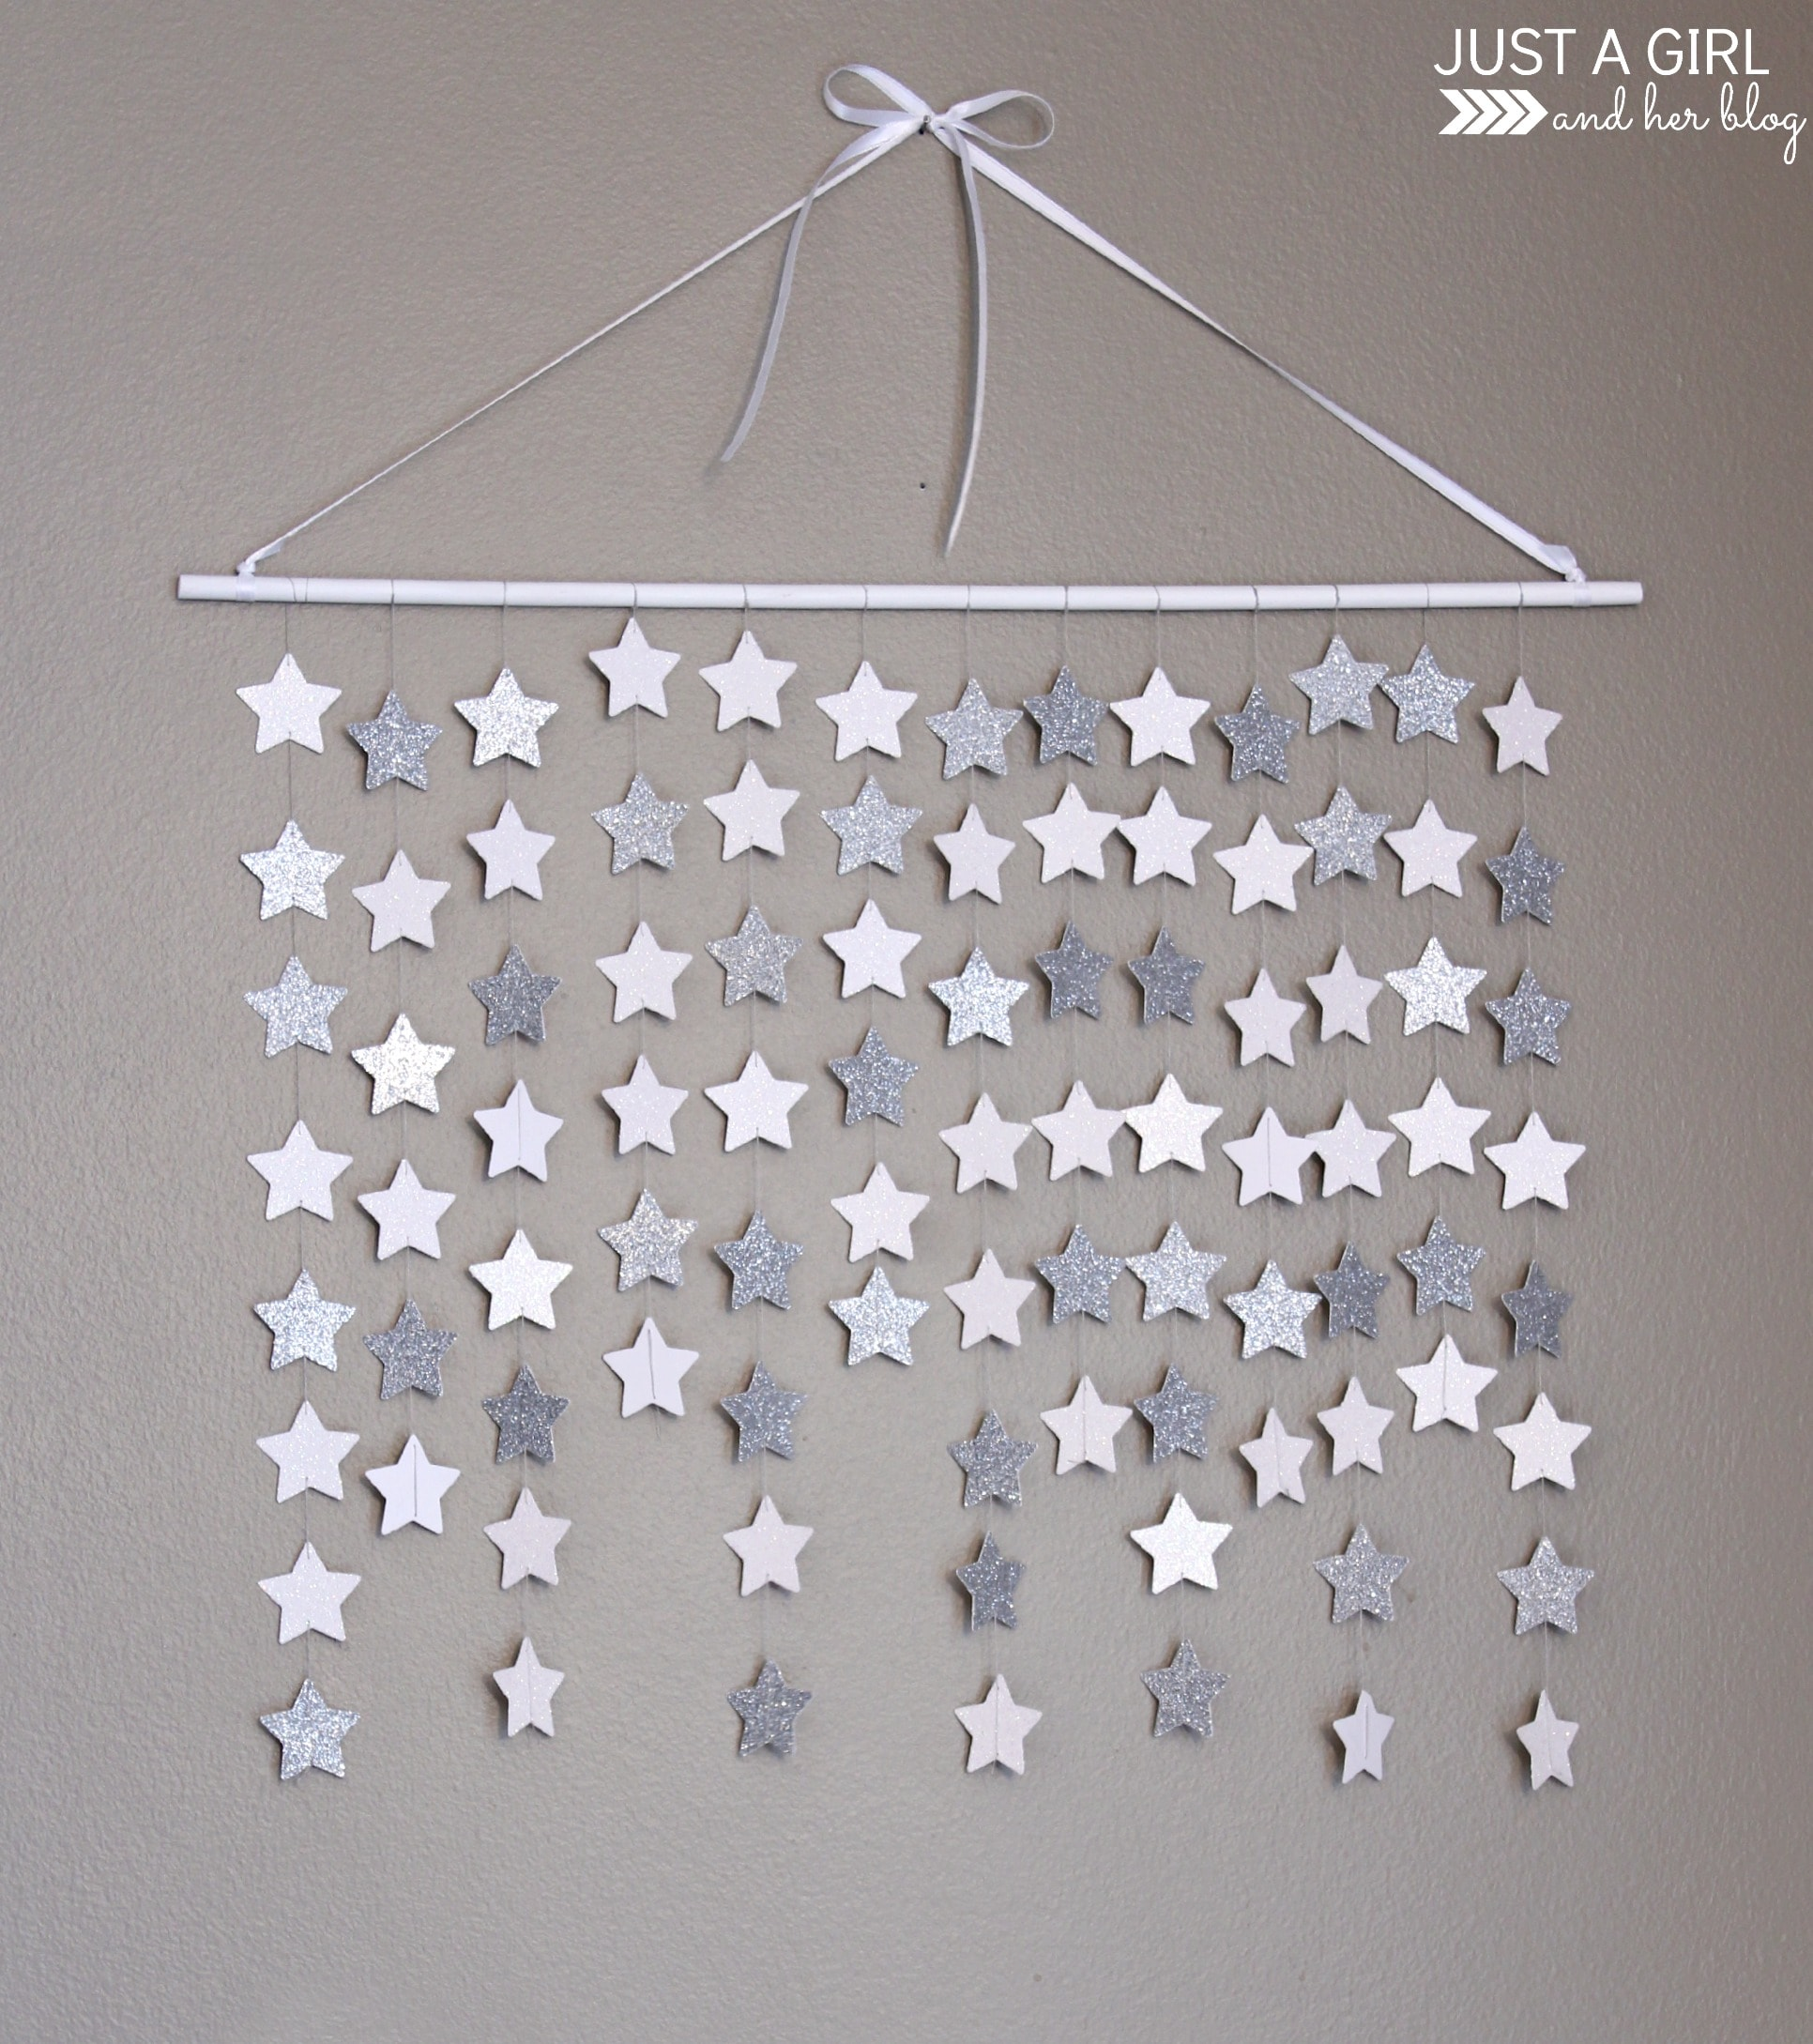 Falling star wall hanging just a girl and her blog for Hanging pictures on walls ideas